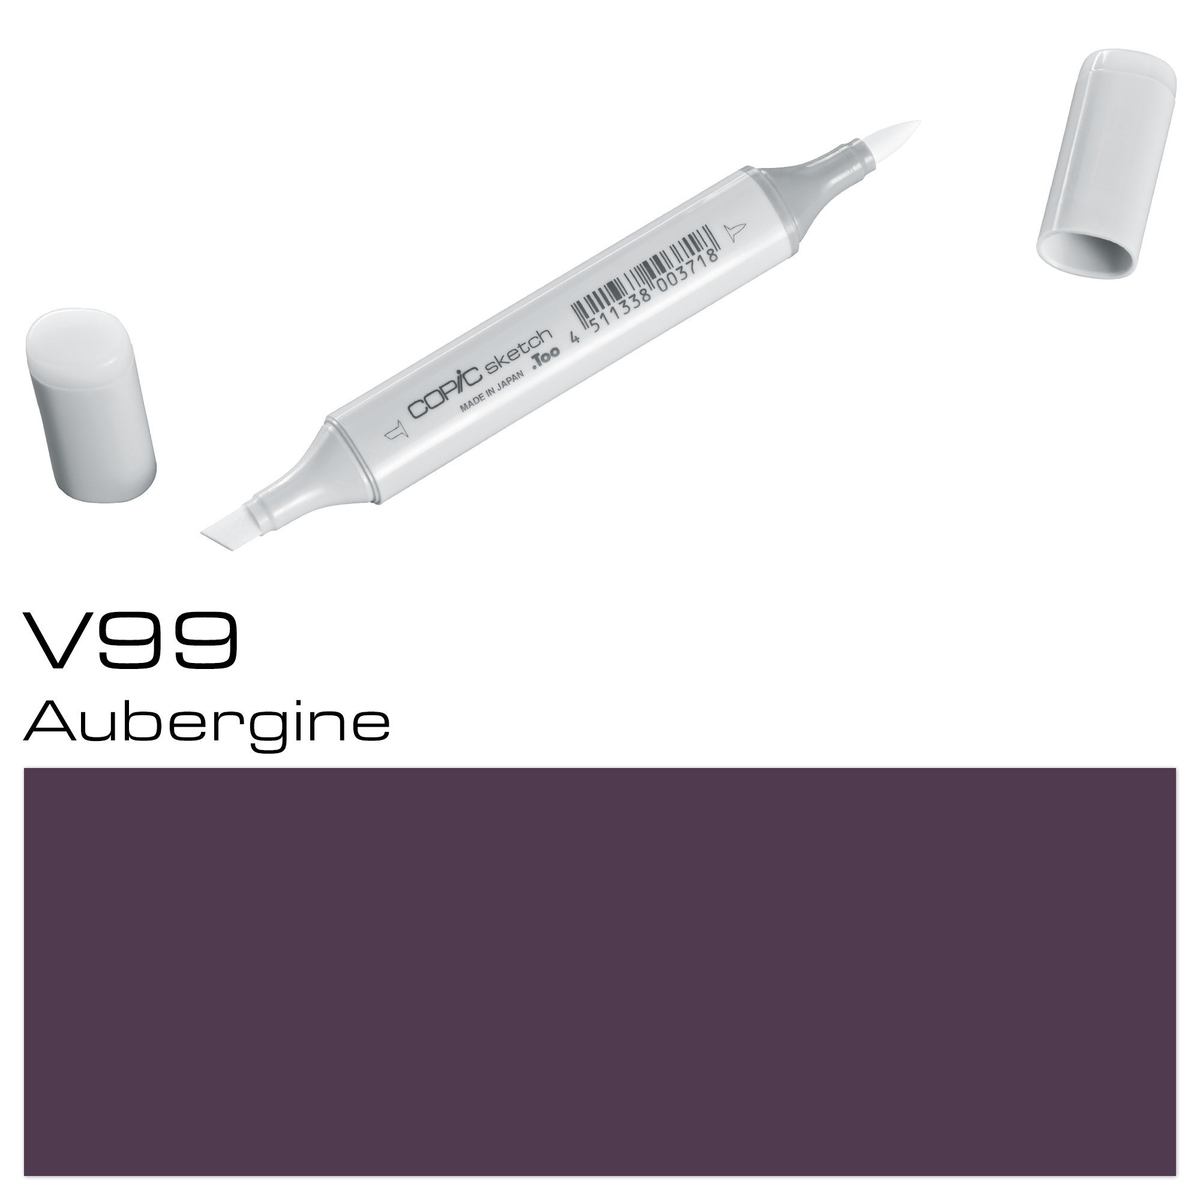 Copic Sketch V 99 aubergine